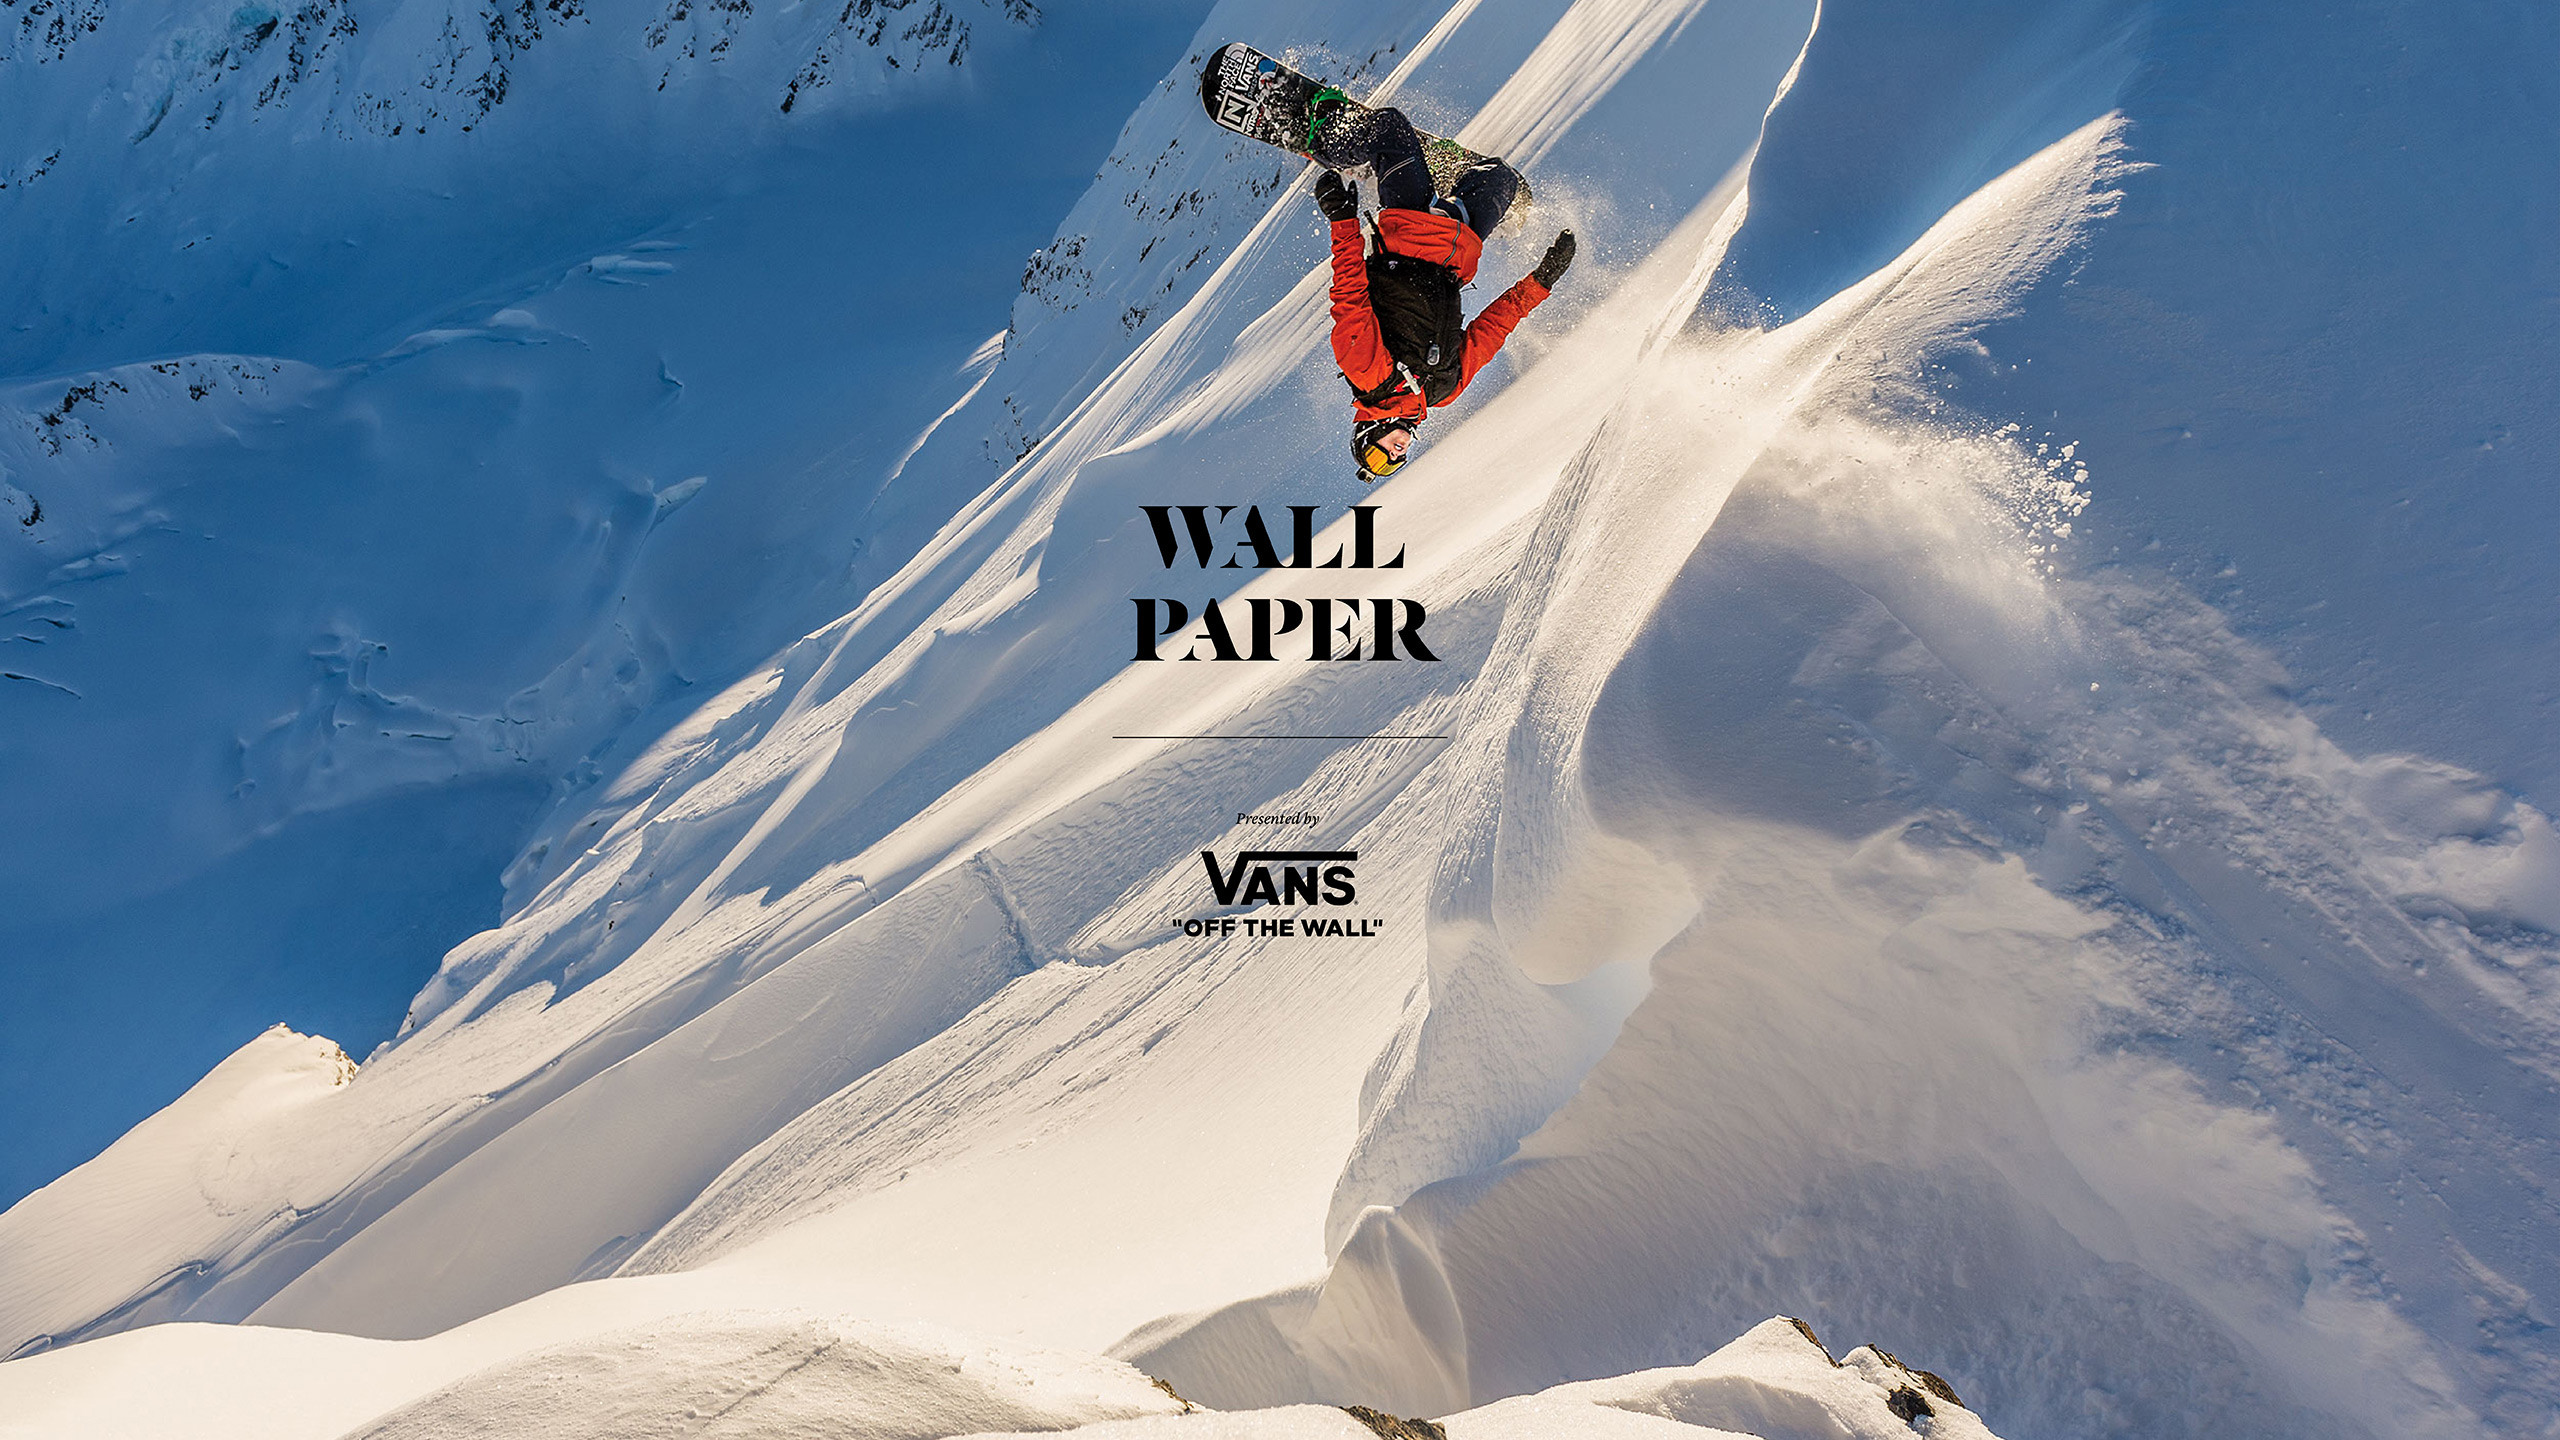 Extreme Snowboarding Wallpapers 62 Images